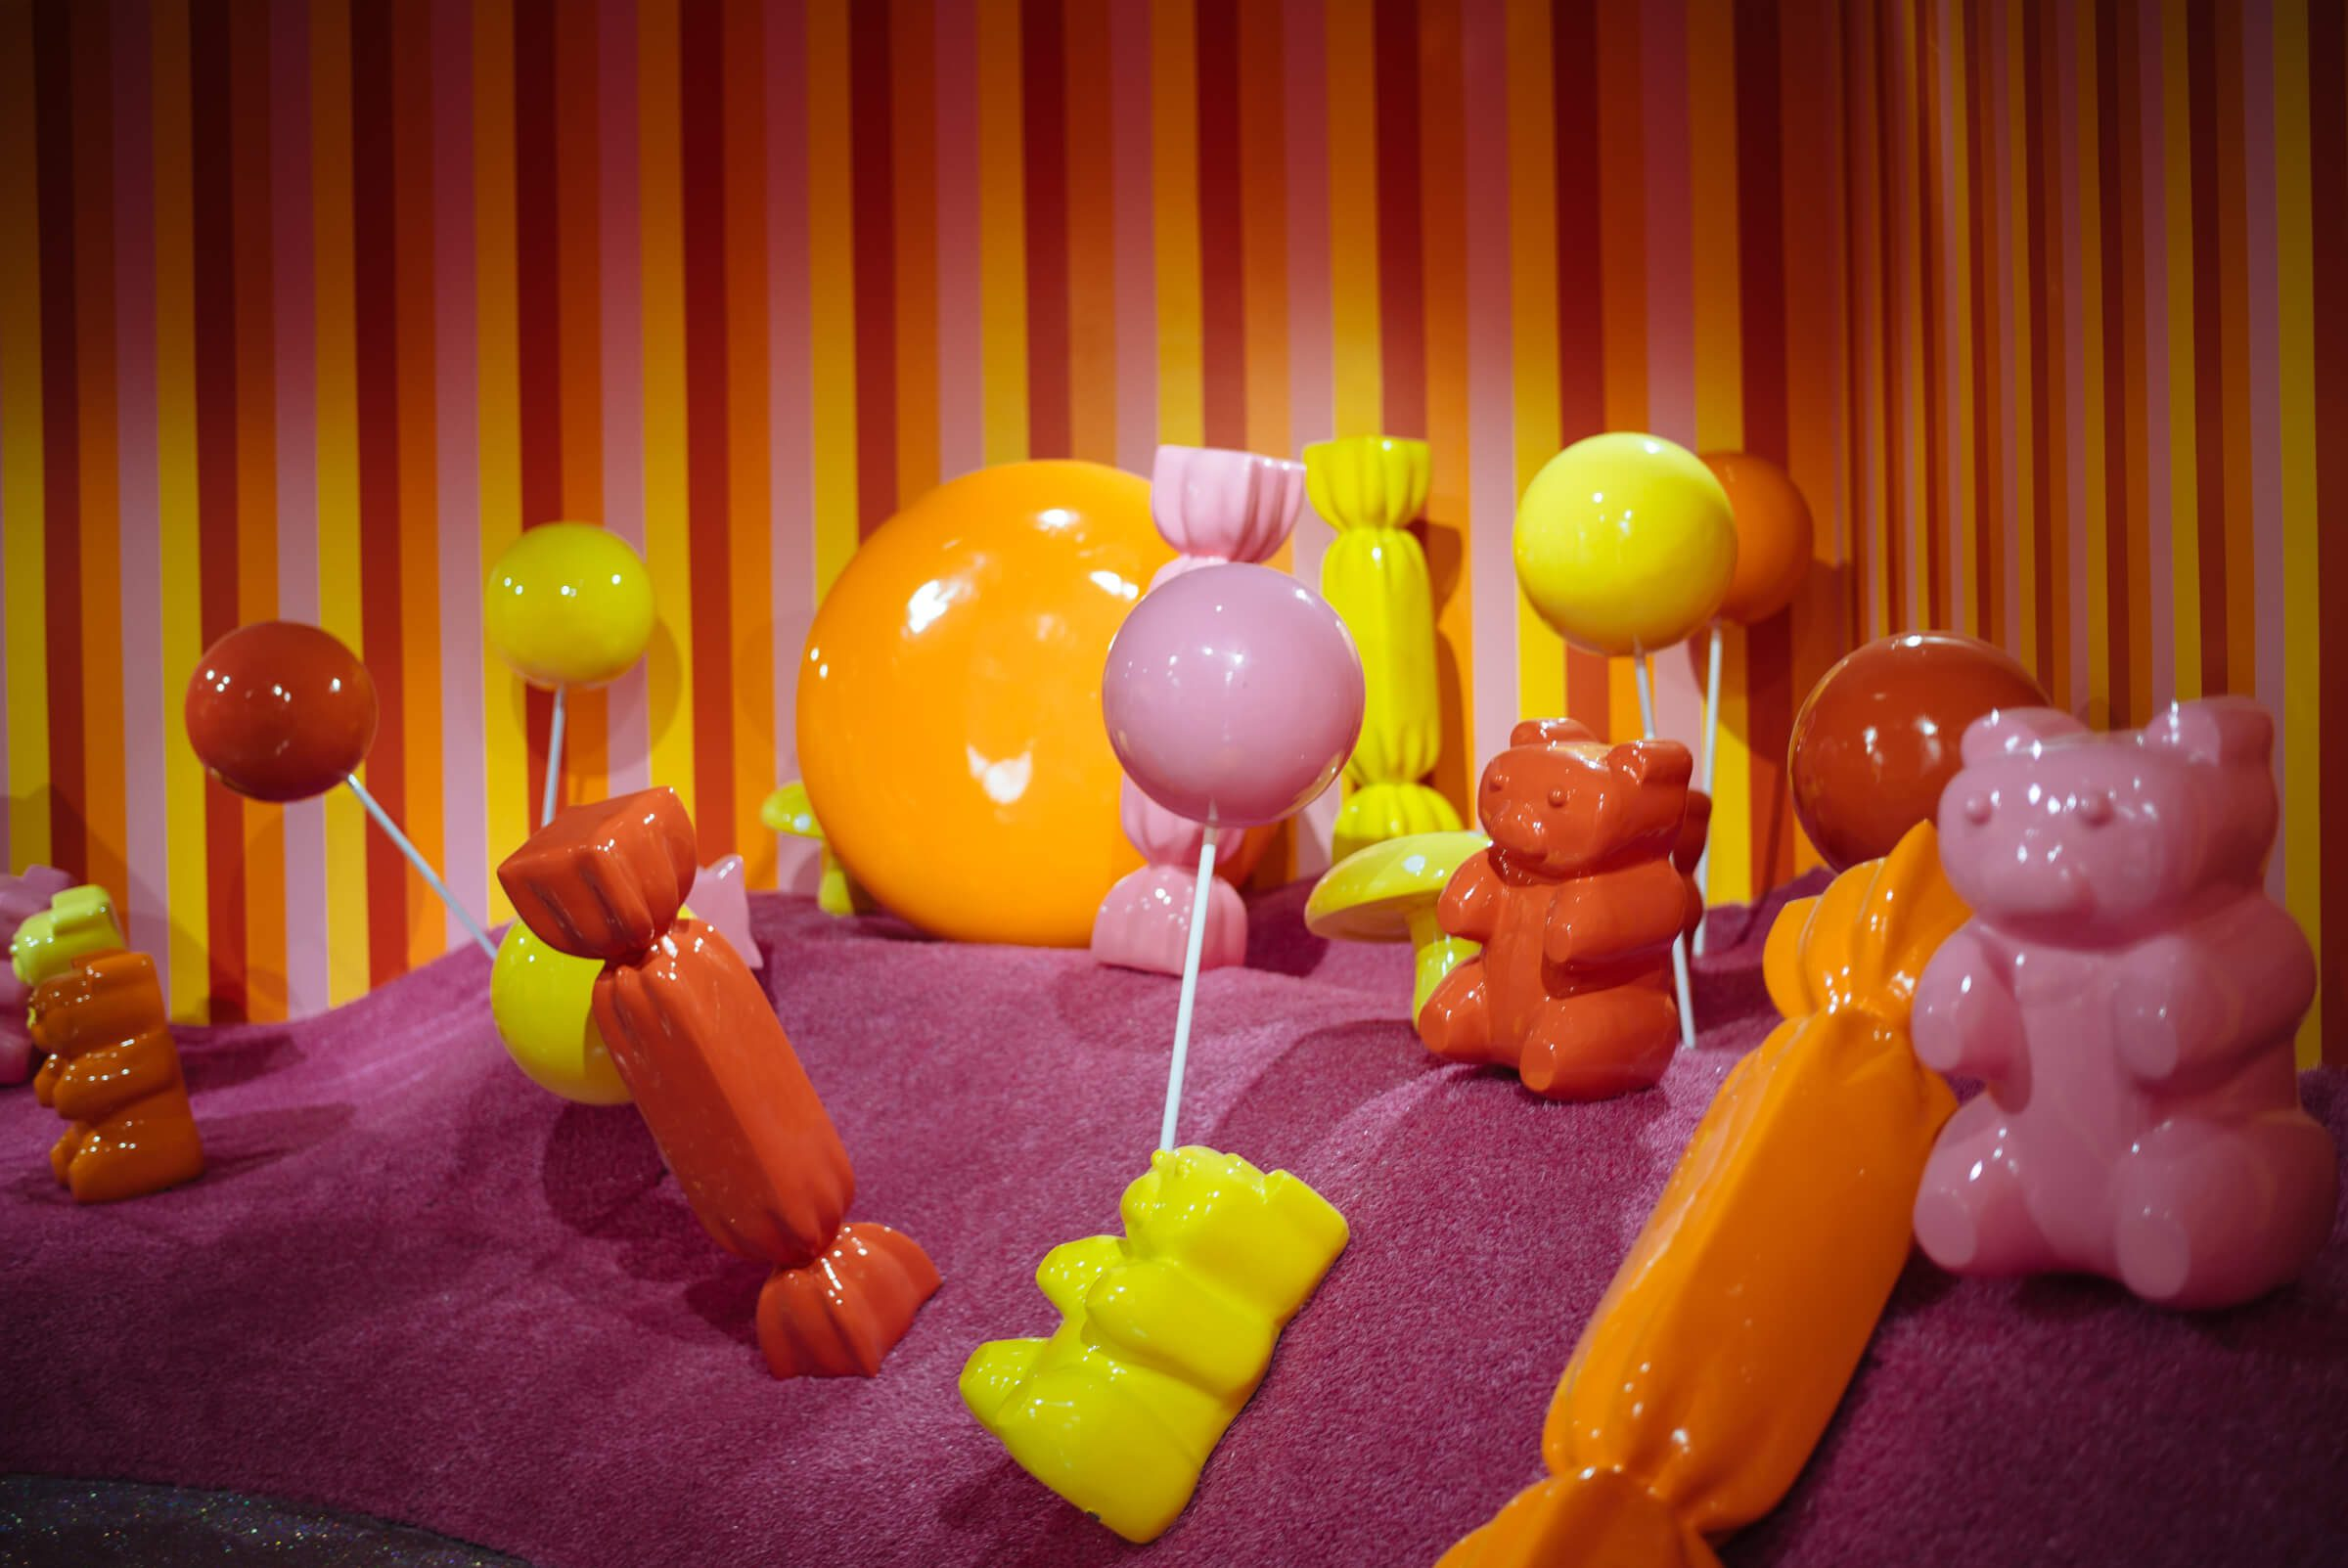 Gummy Bear Candy Garden Room at The Museum of Ice Cream San Francisco, The Taste SF